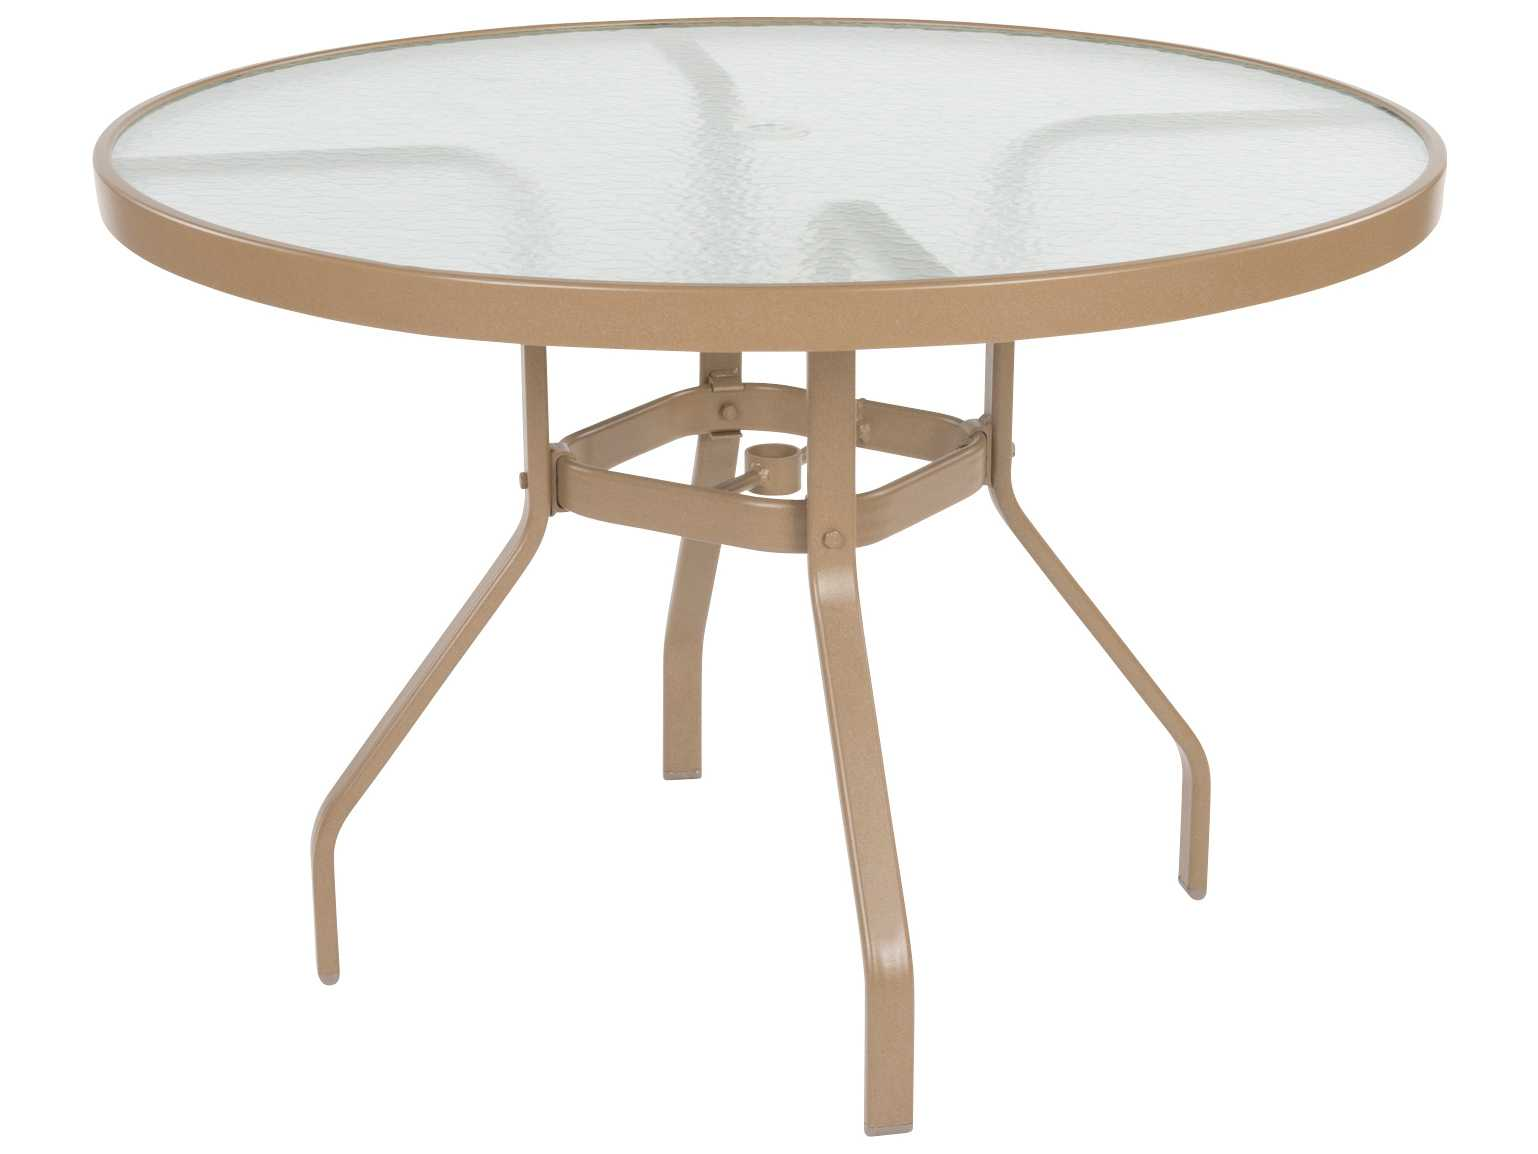 Windward design group glass top aluminum 42 round dining for Round glass top dining table